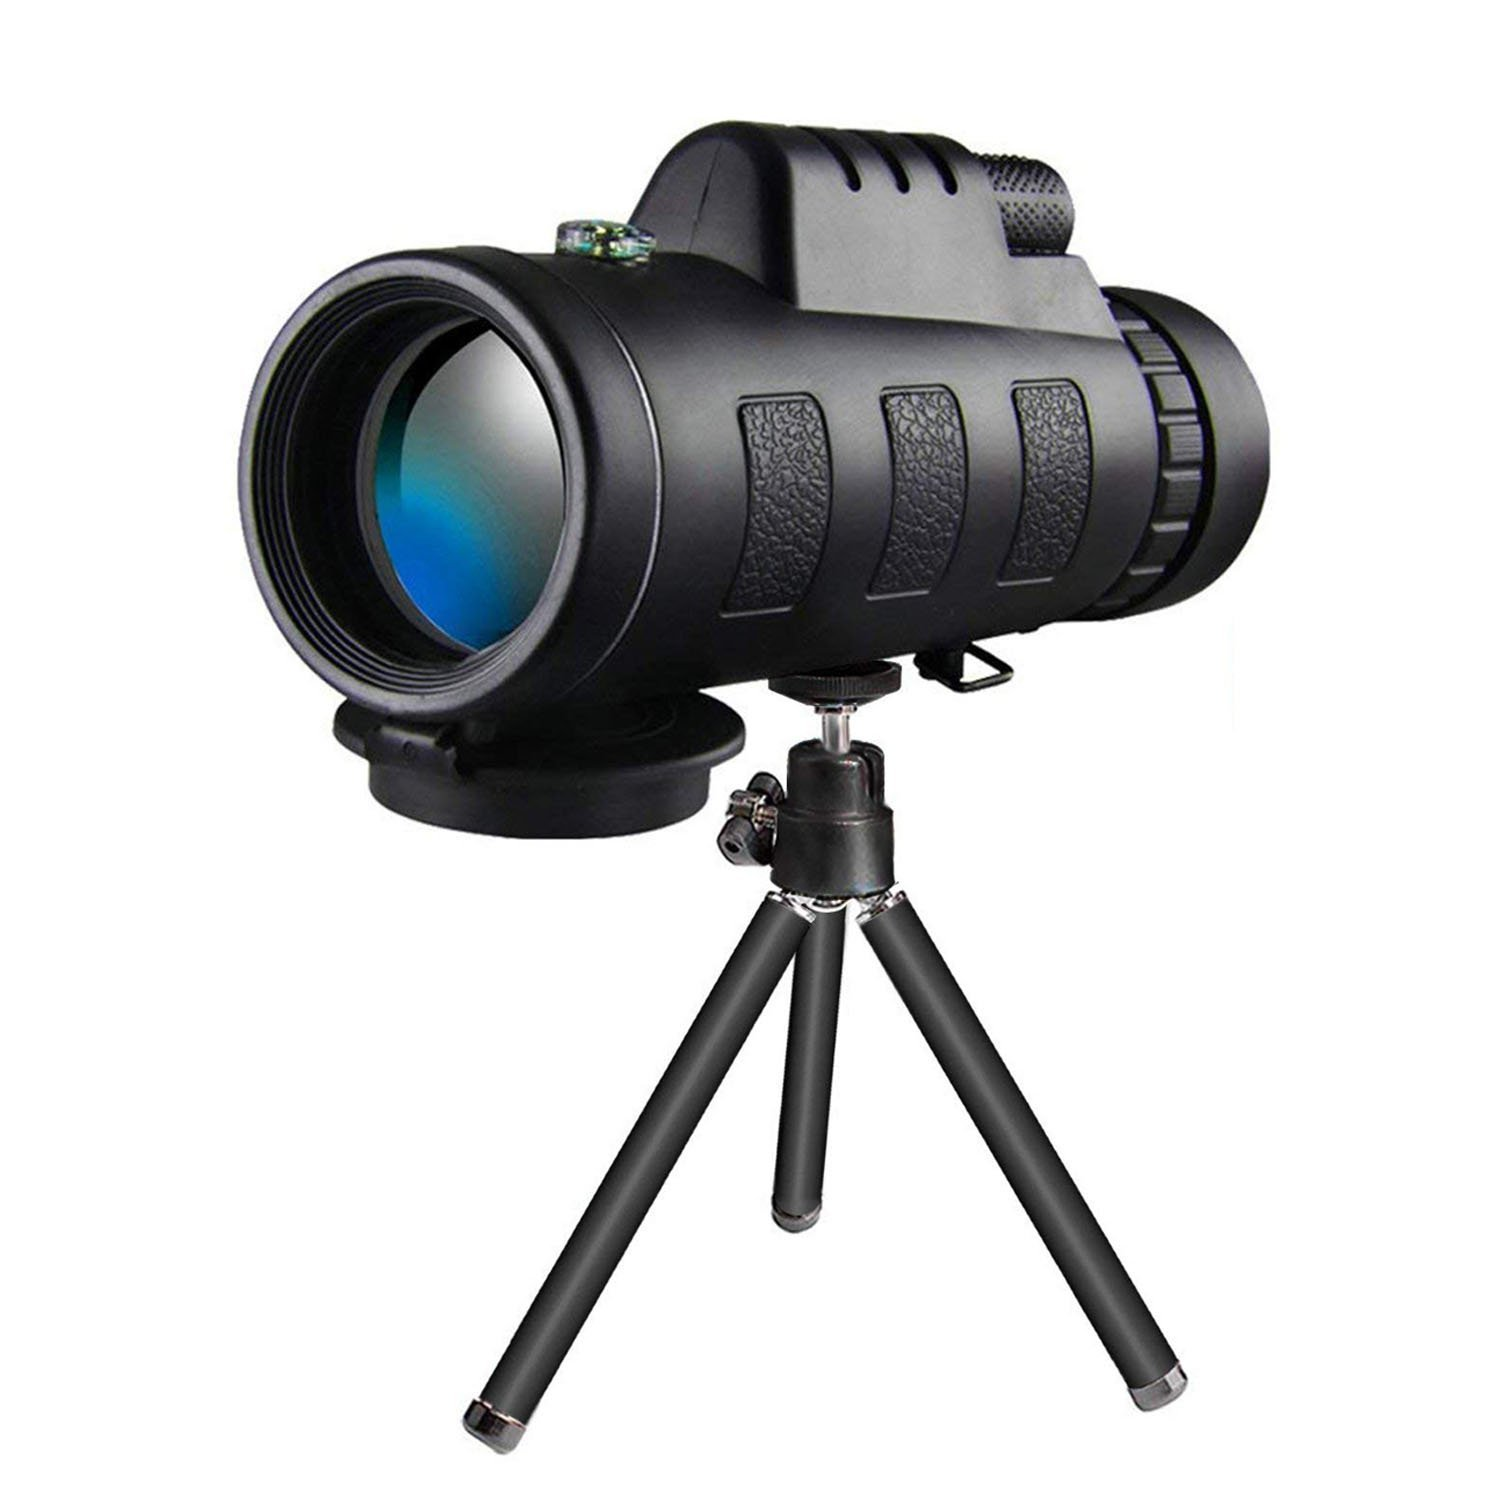 MJDUO Monocular Telescope -12X50 High Power Prism Monocular and Quick Smartphone Holder Hunting Sports Outdoors Wildlife Travel Monoculars Telescope Best Gift for Adults and Kids